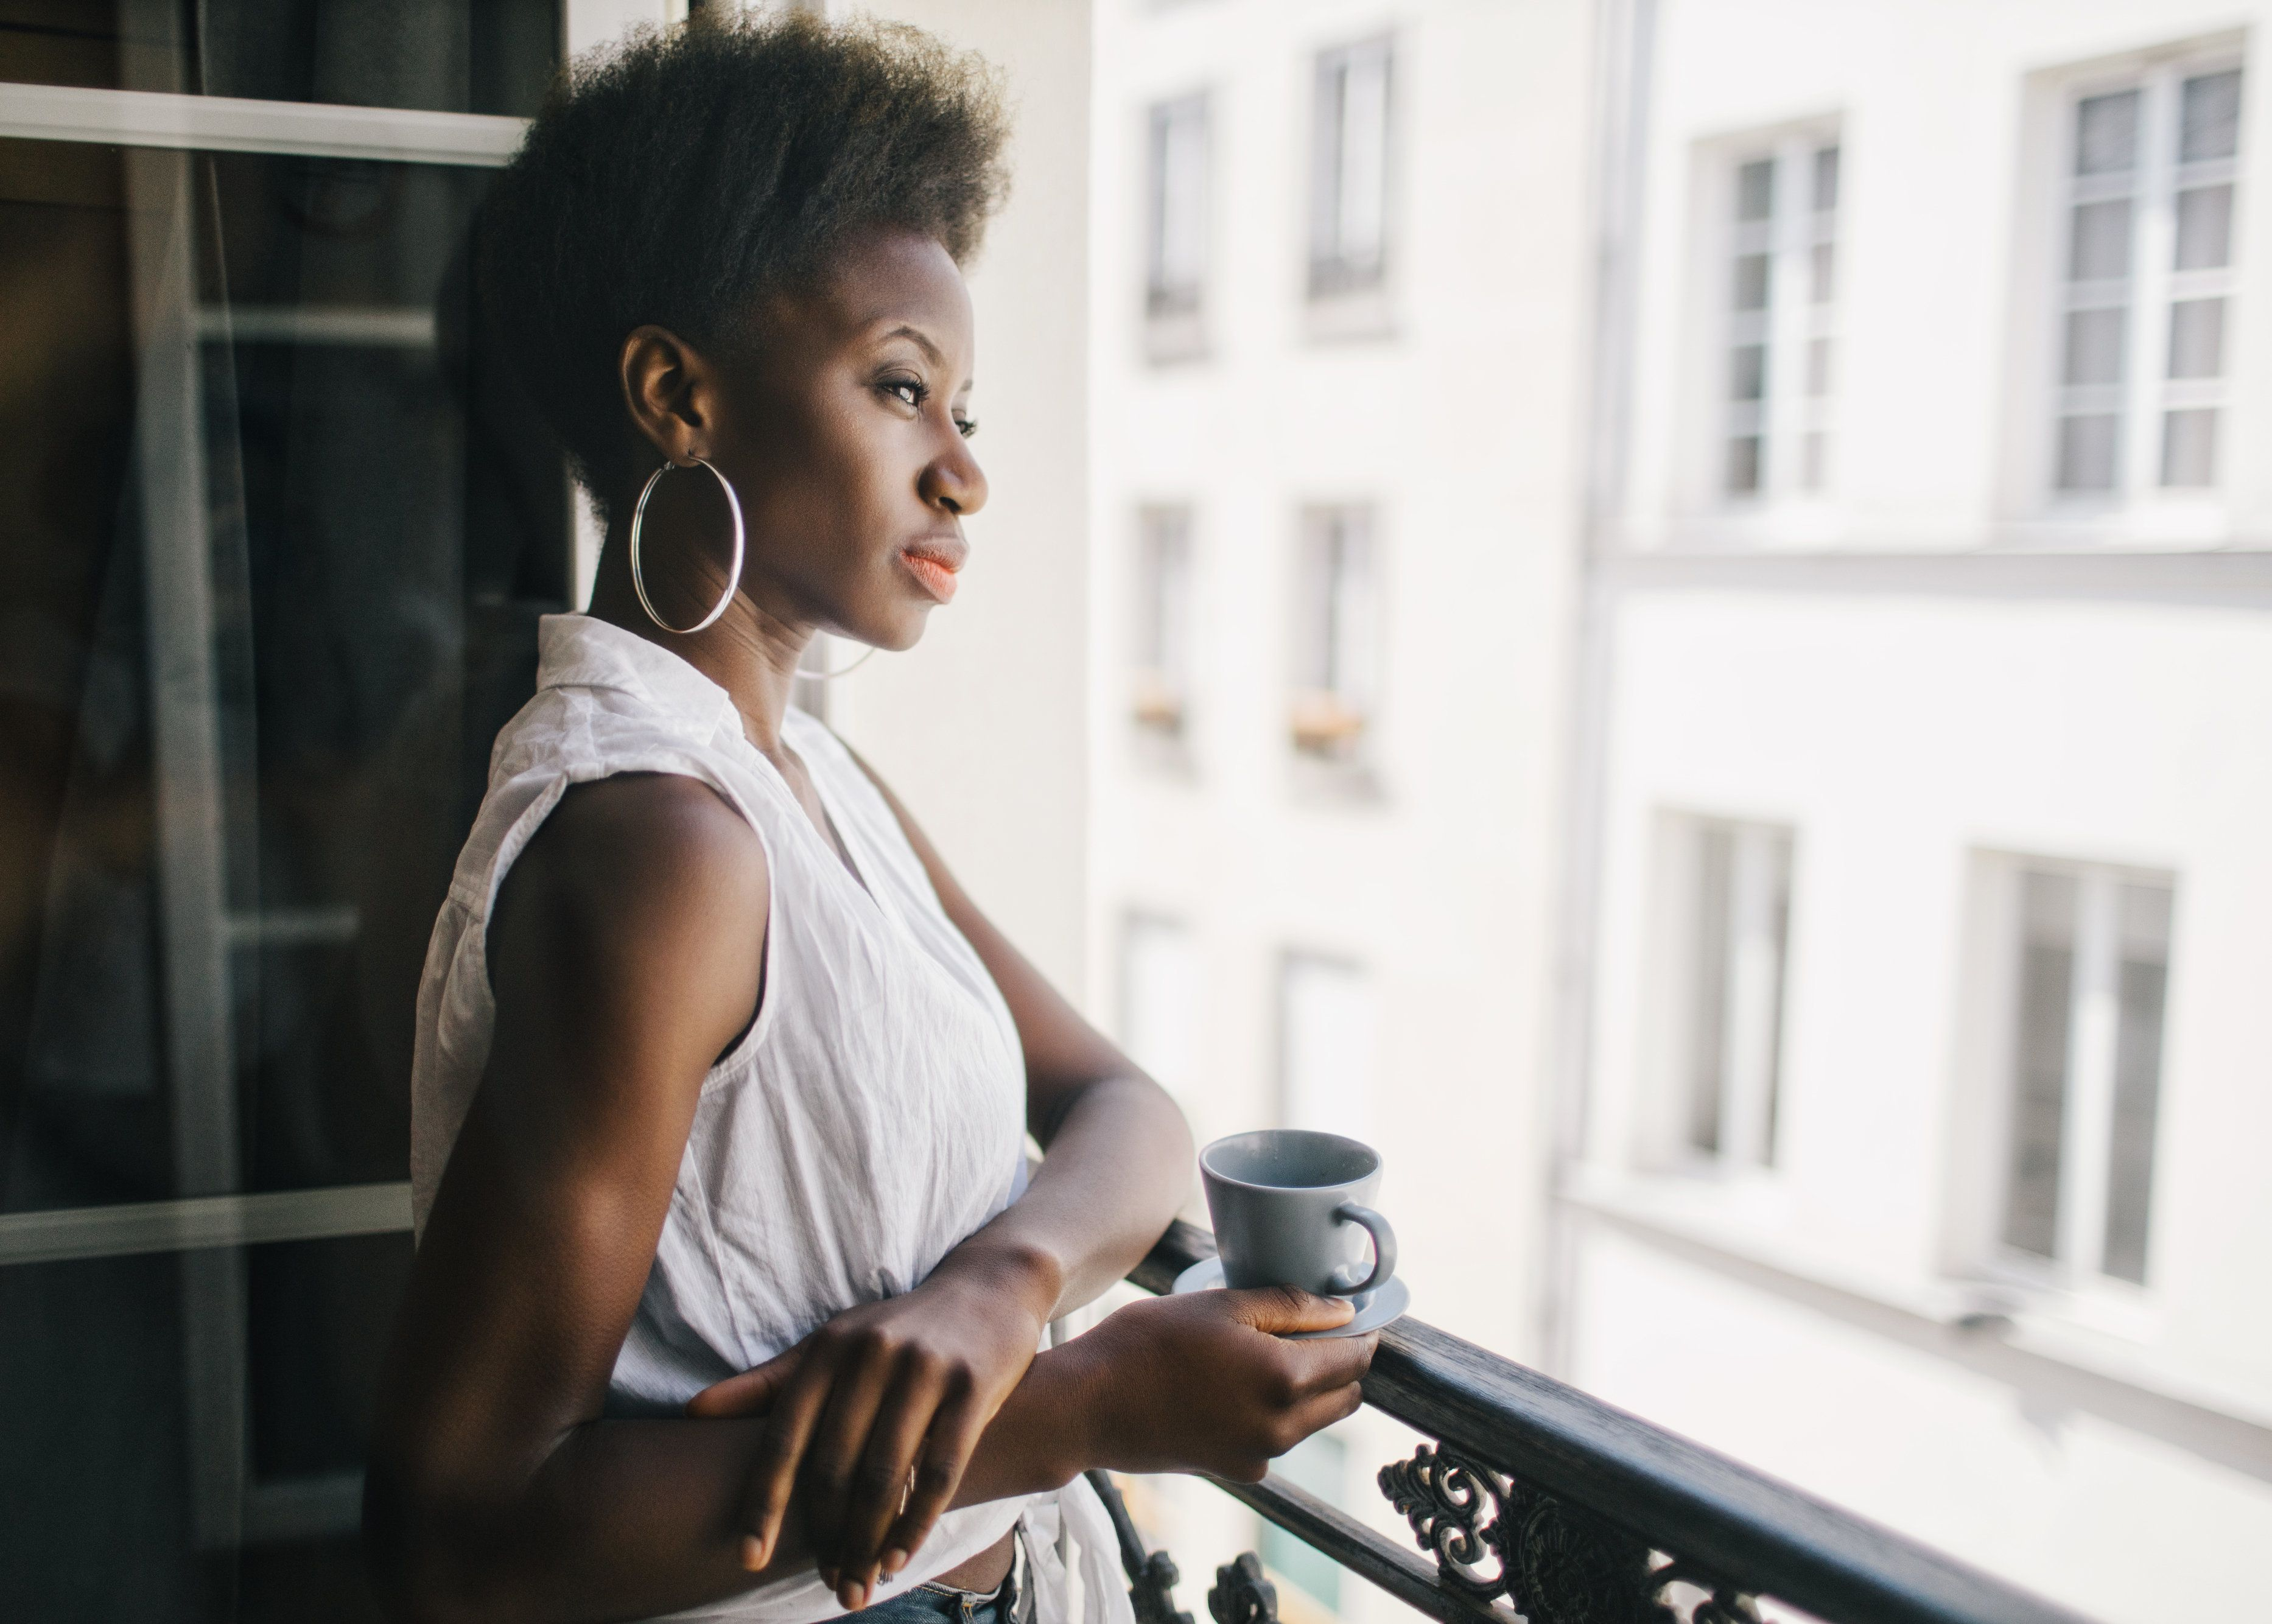 Woman relaxing with a cup of coffee besides the window